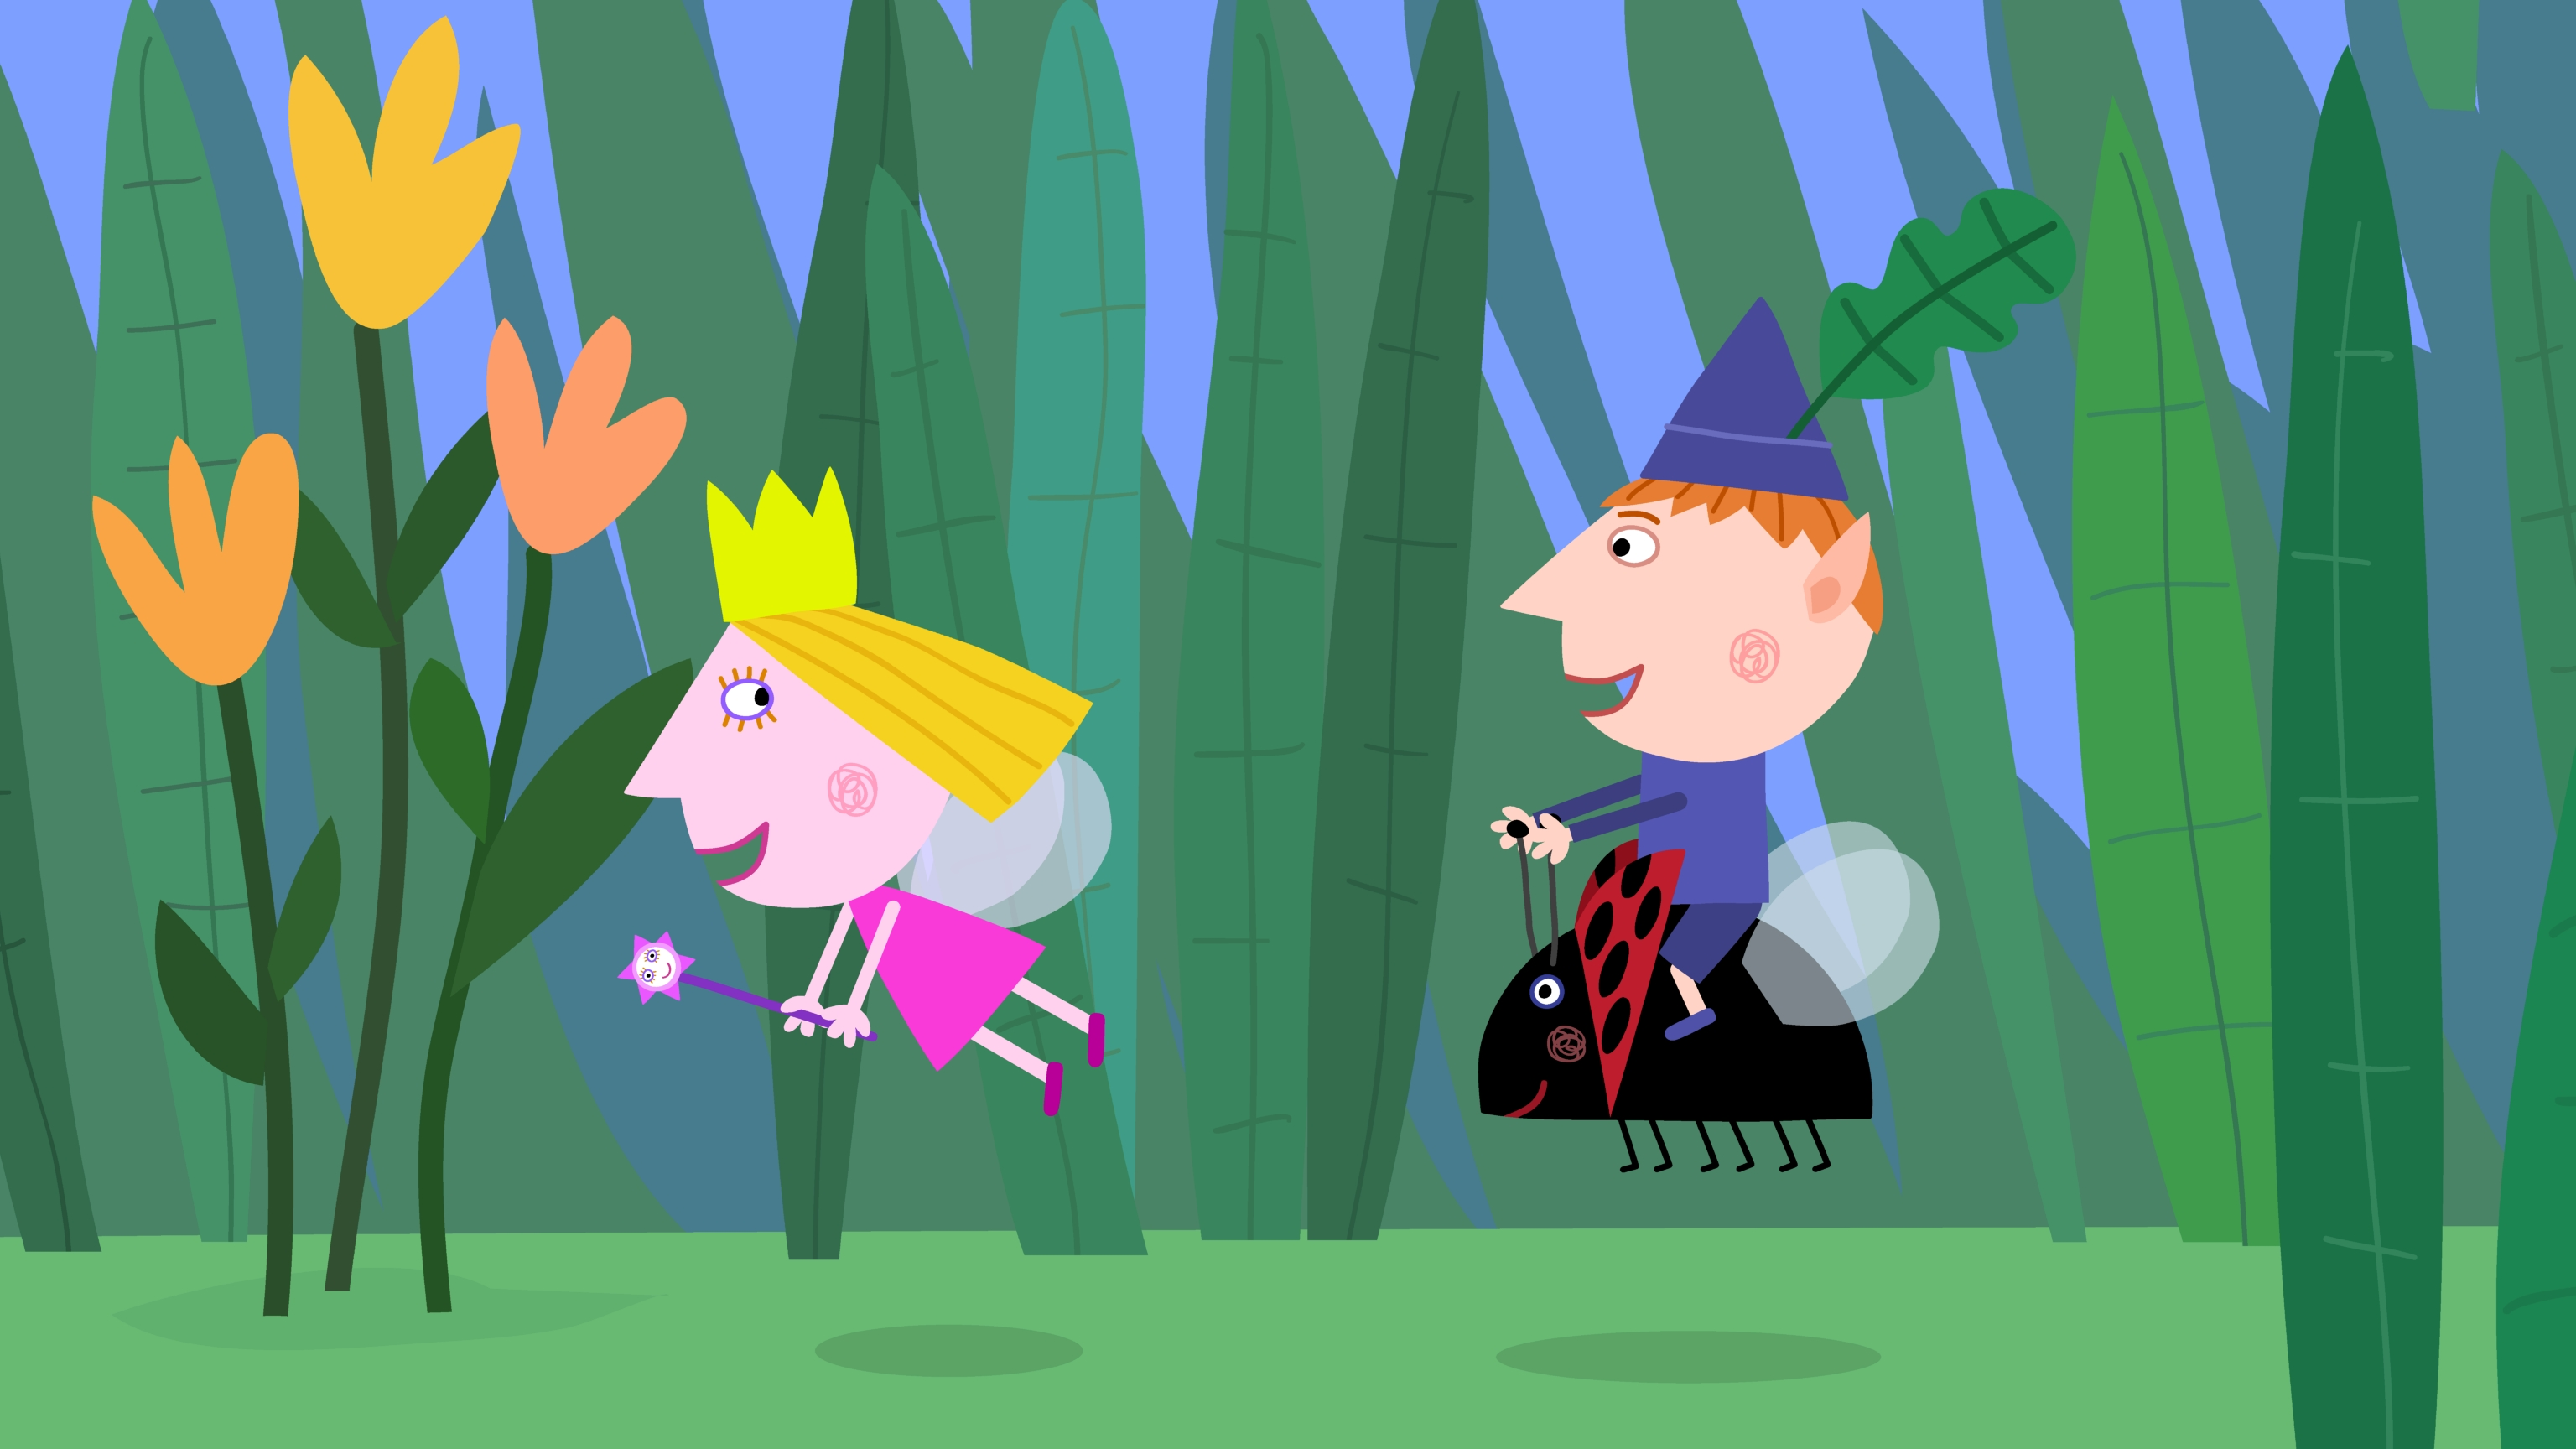 Copied from Kidscreen - Ben and Holly flying